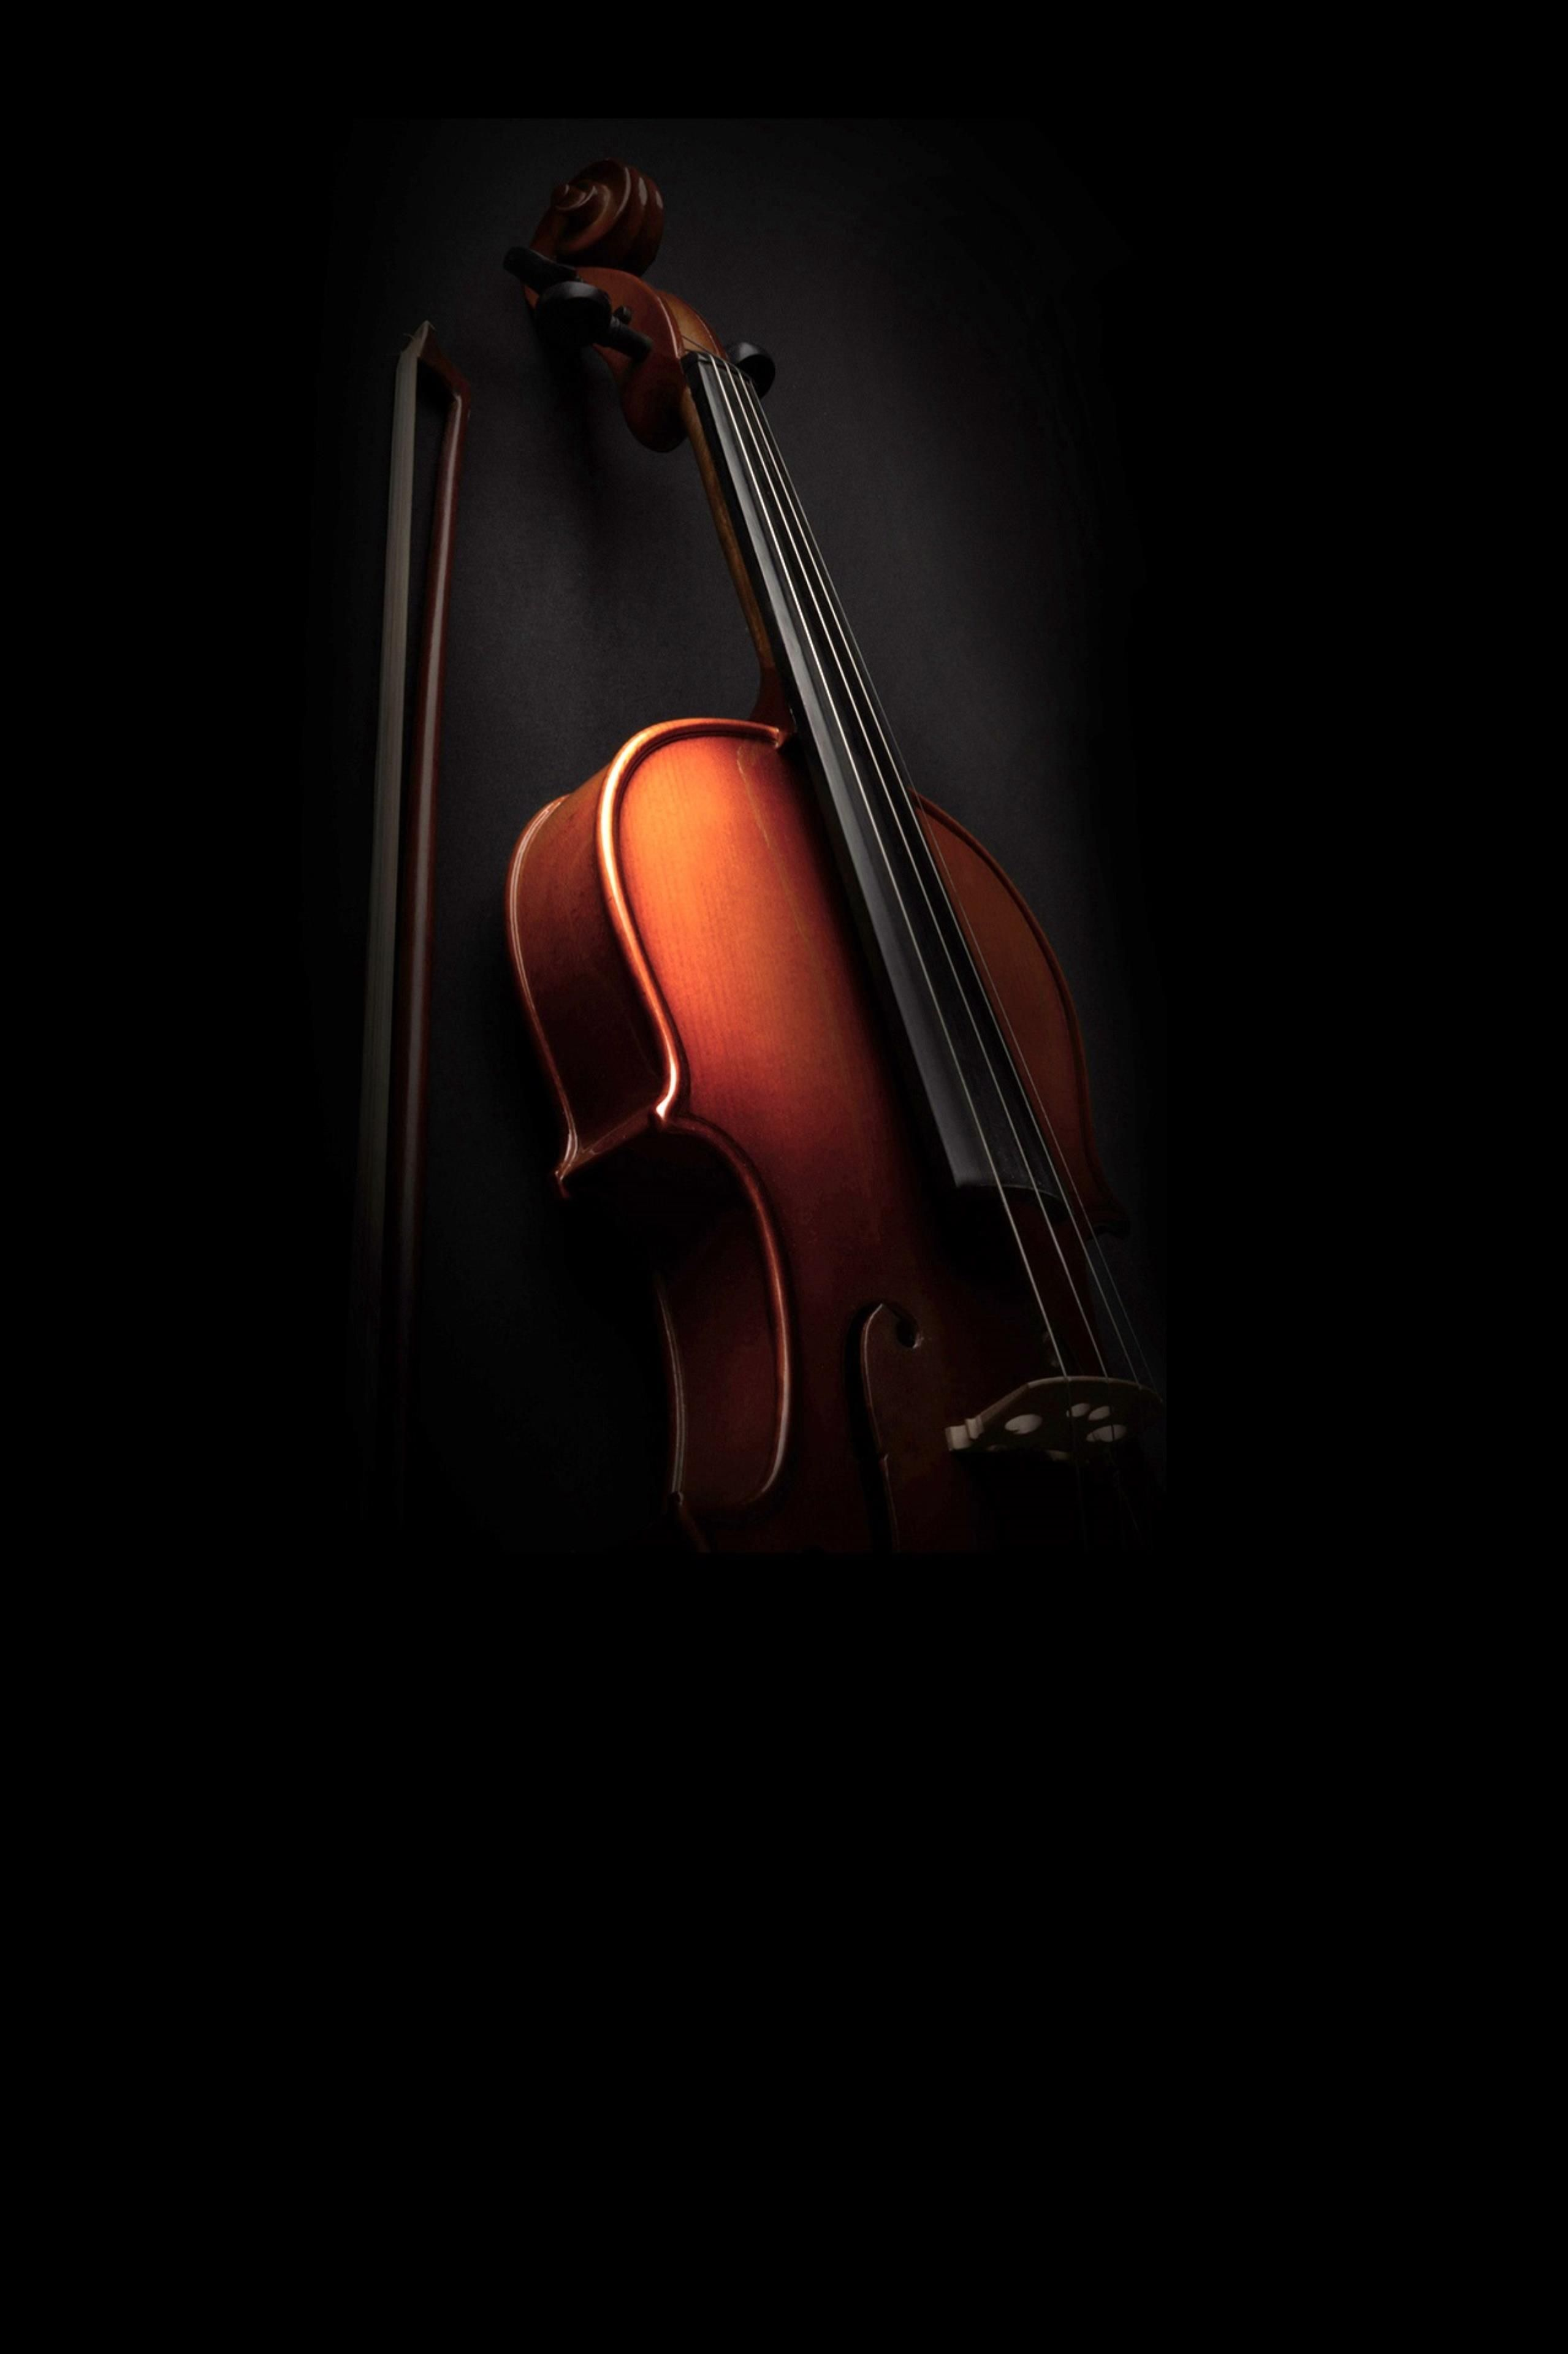 Pin By Rere Dina On Music Music Wallpaper Music Wallpaper